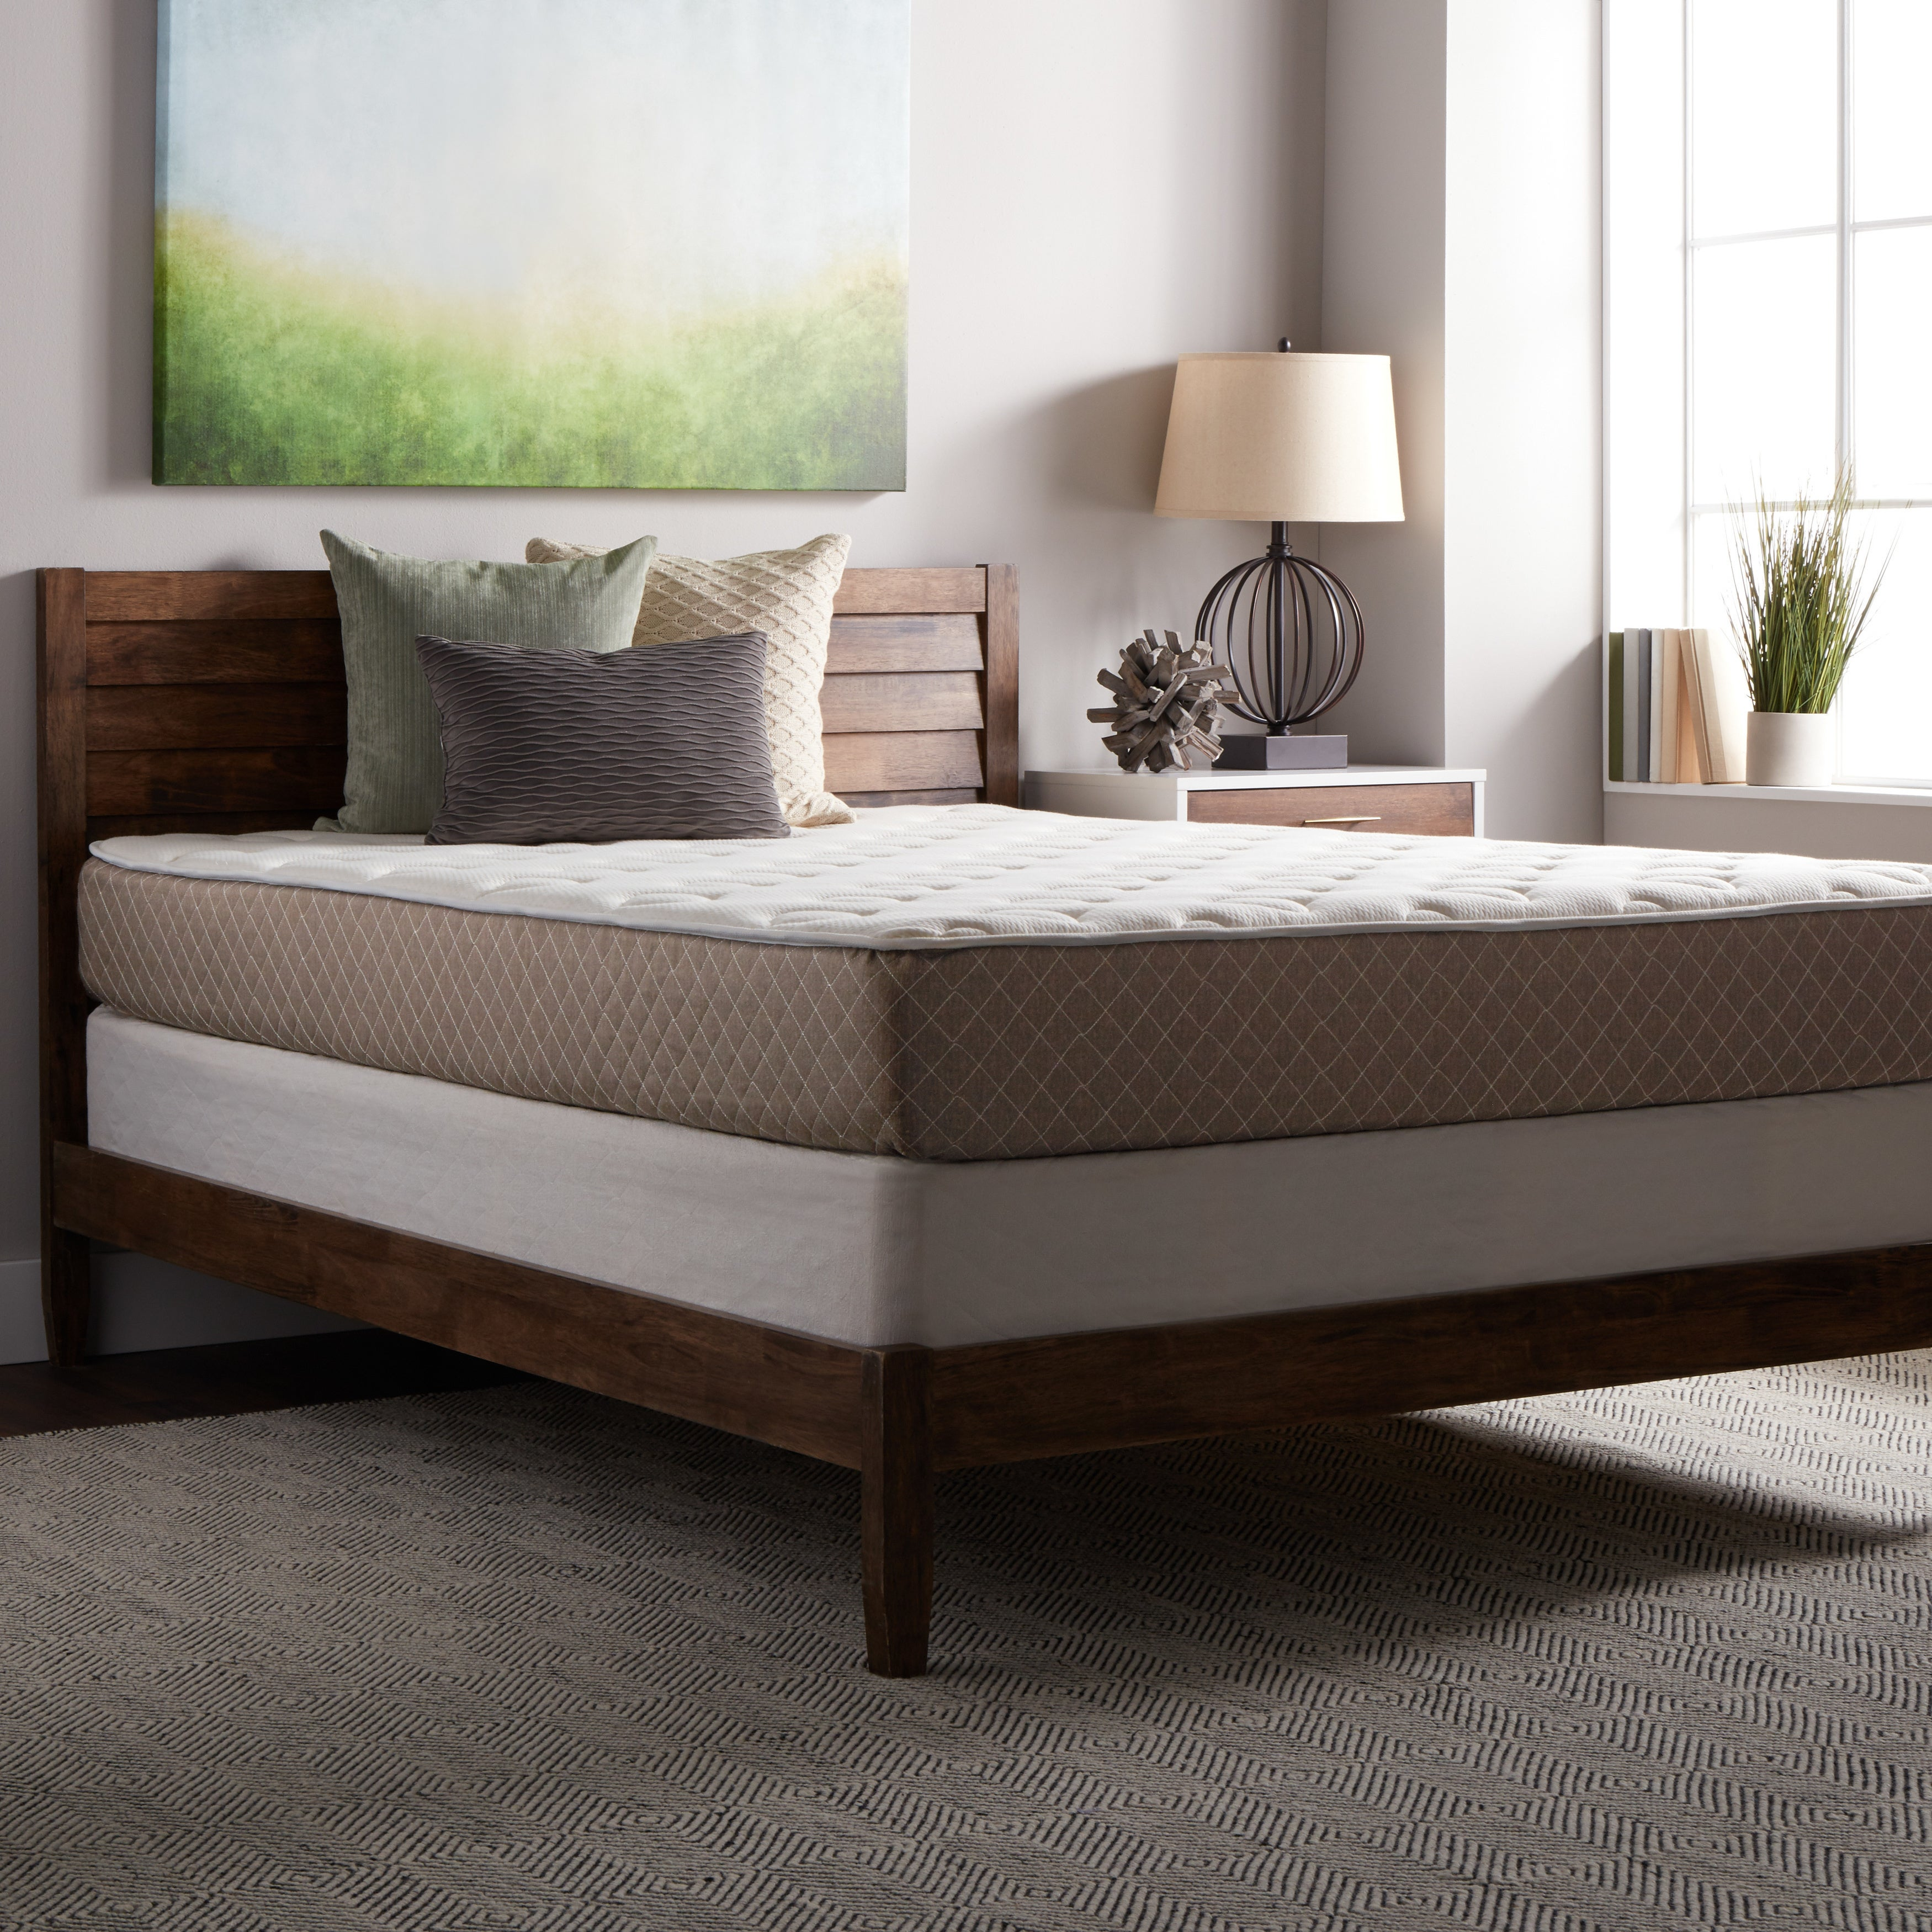 Select Luxury Medium-firm Quilted Top 10-inch King Size F...